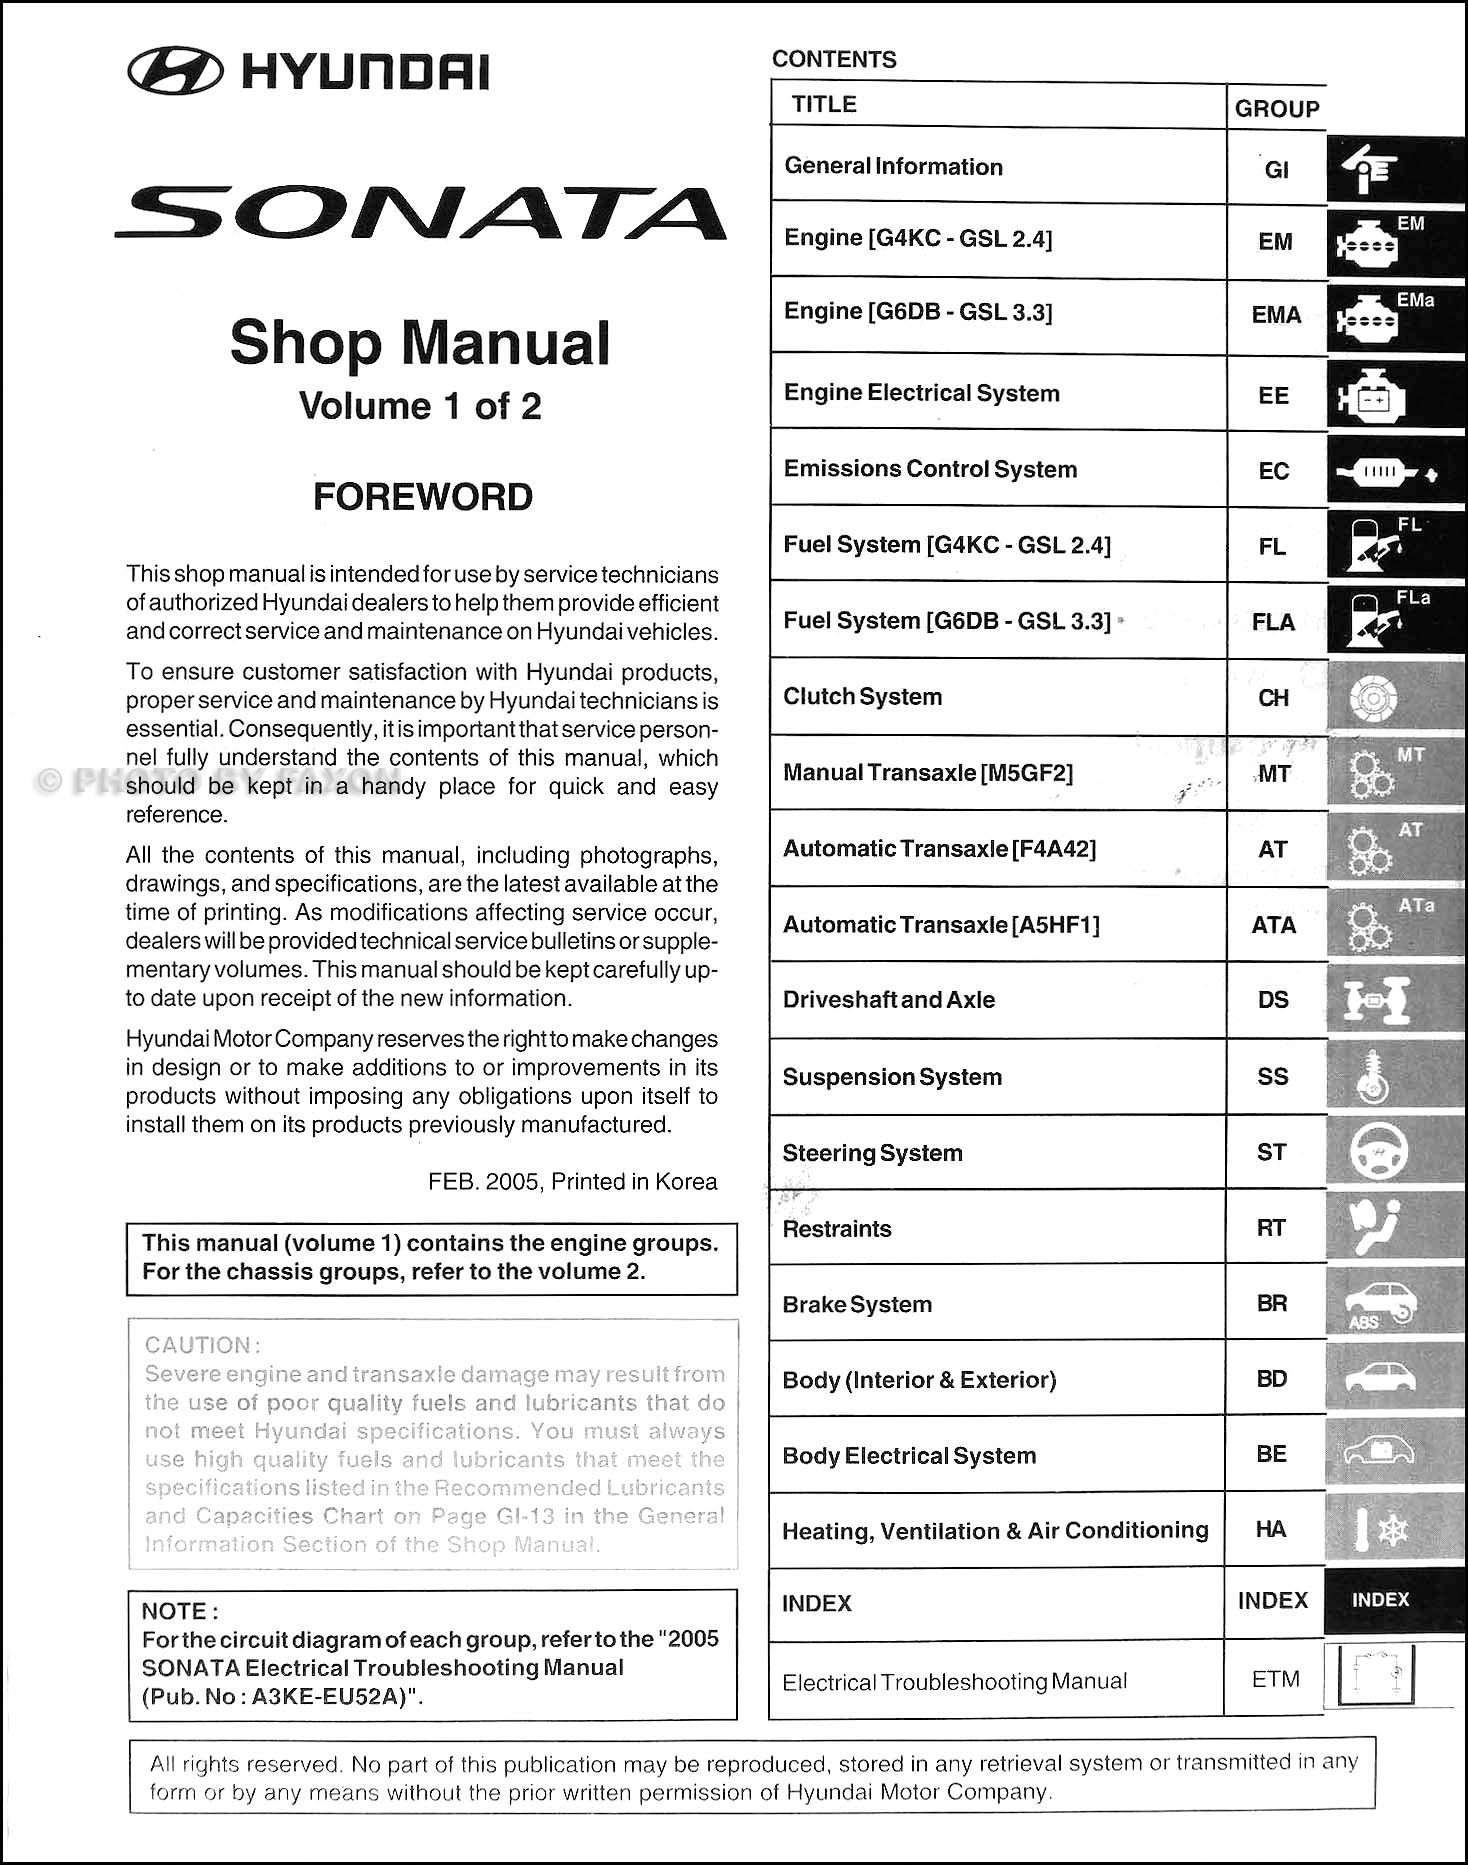 2006 Hyundai Sonata Shop Manual Original 2 Volume Set · Table of Contents